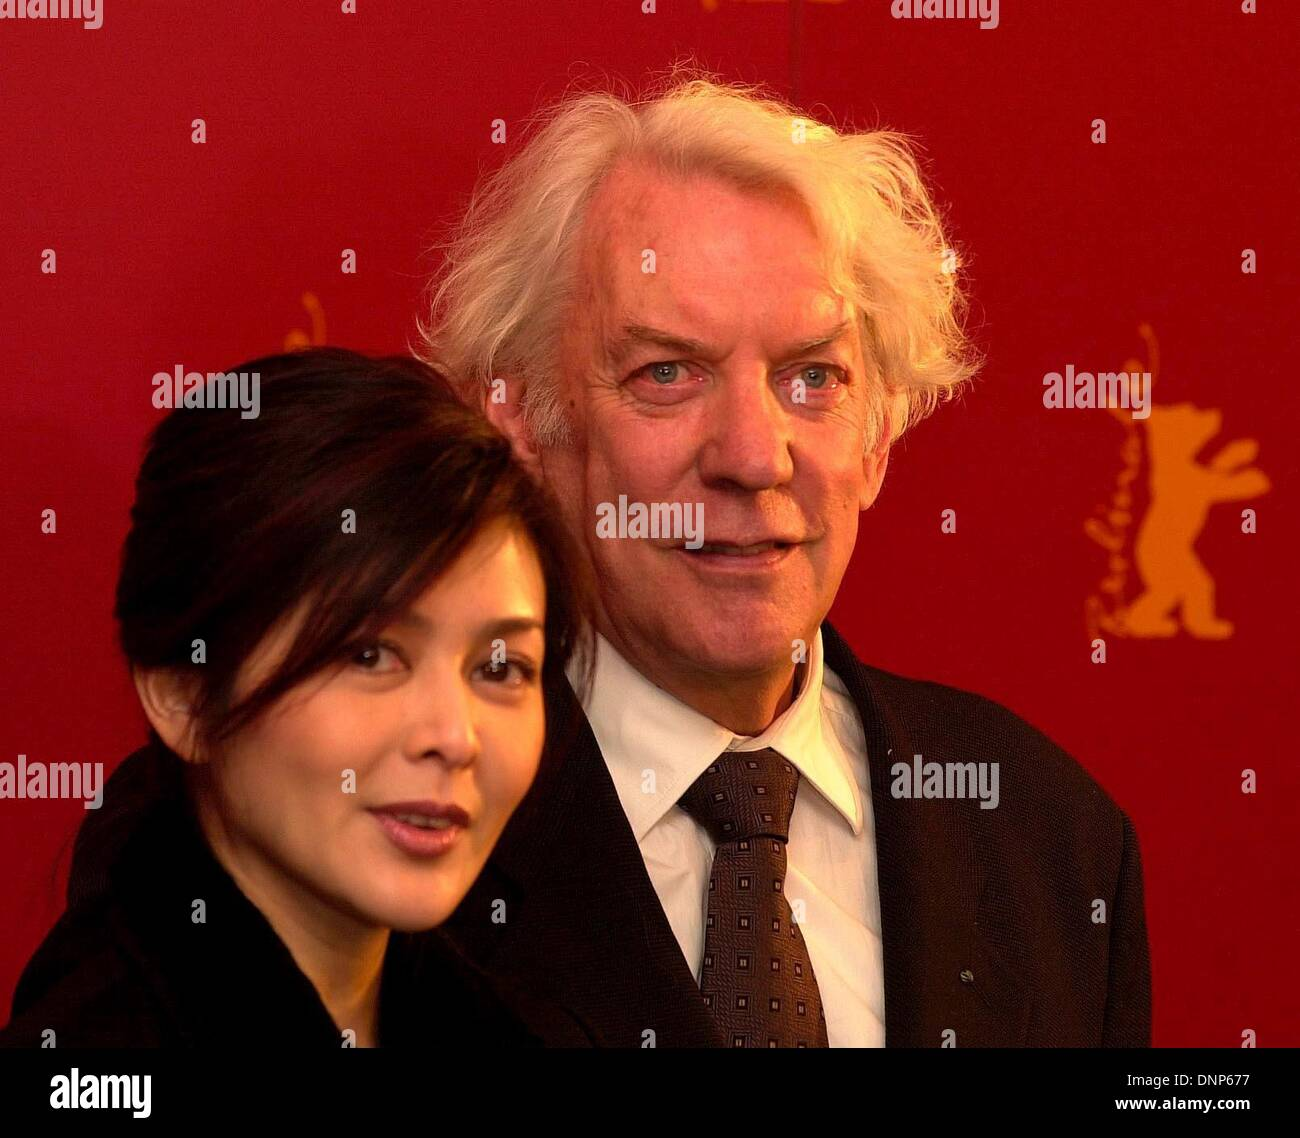 Donald Sutherland and Rosamund Kwan, both actors in the Berlinale film 'Big Shot's Funeral'. - Stock Image